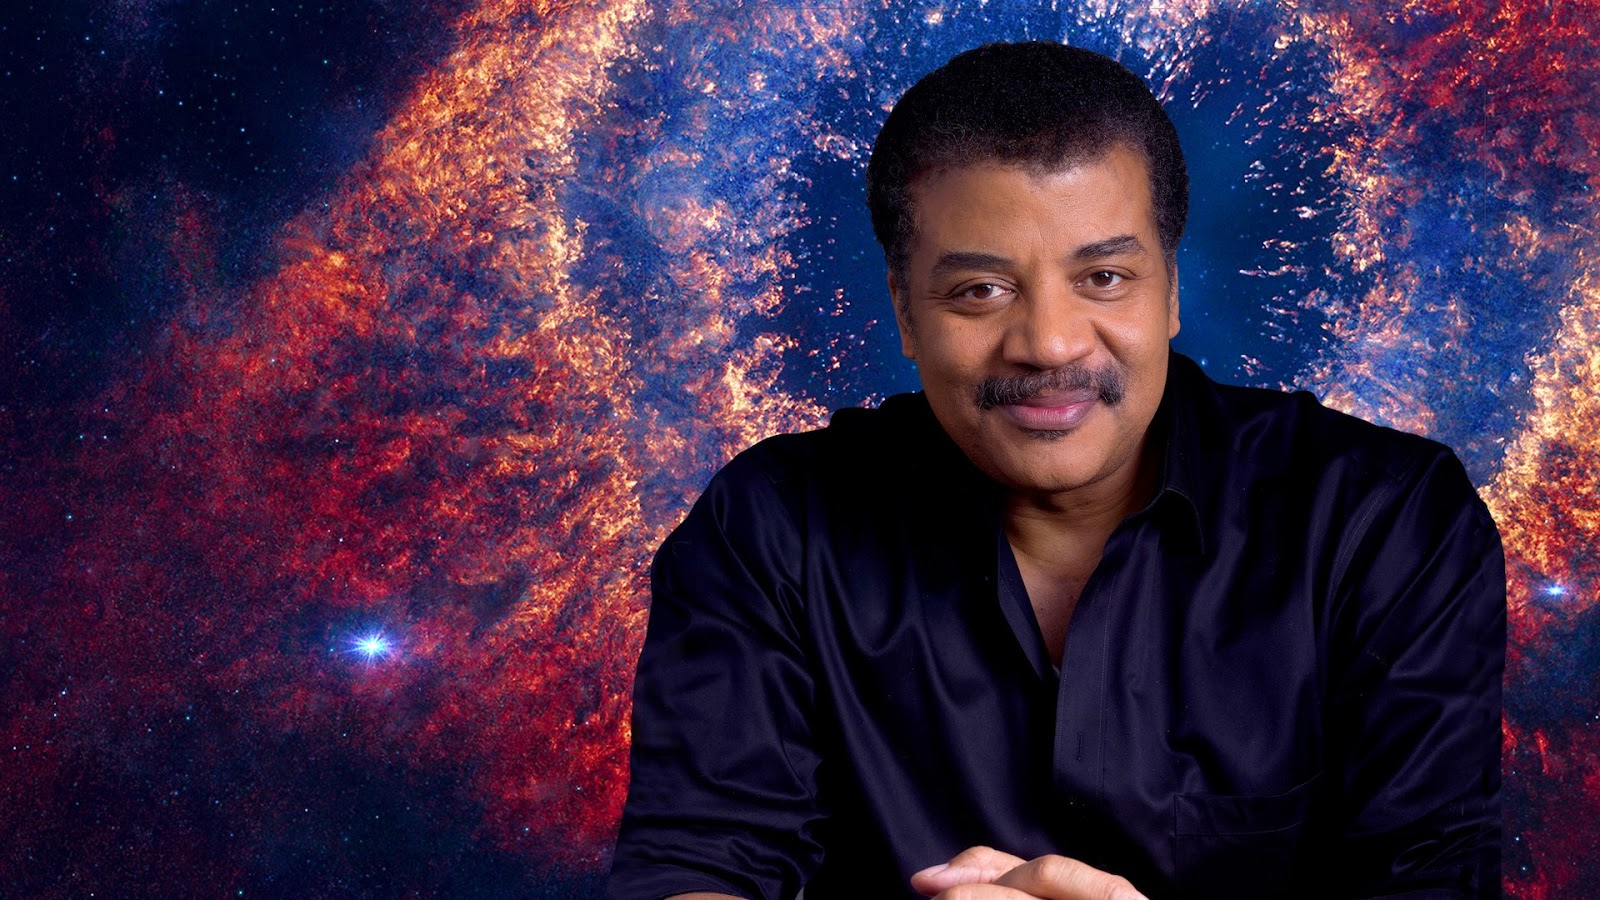 Neil deGrasse Tyson to Return to National Geographic After Being Cleared of Assault Allegations